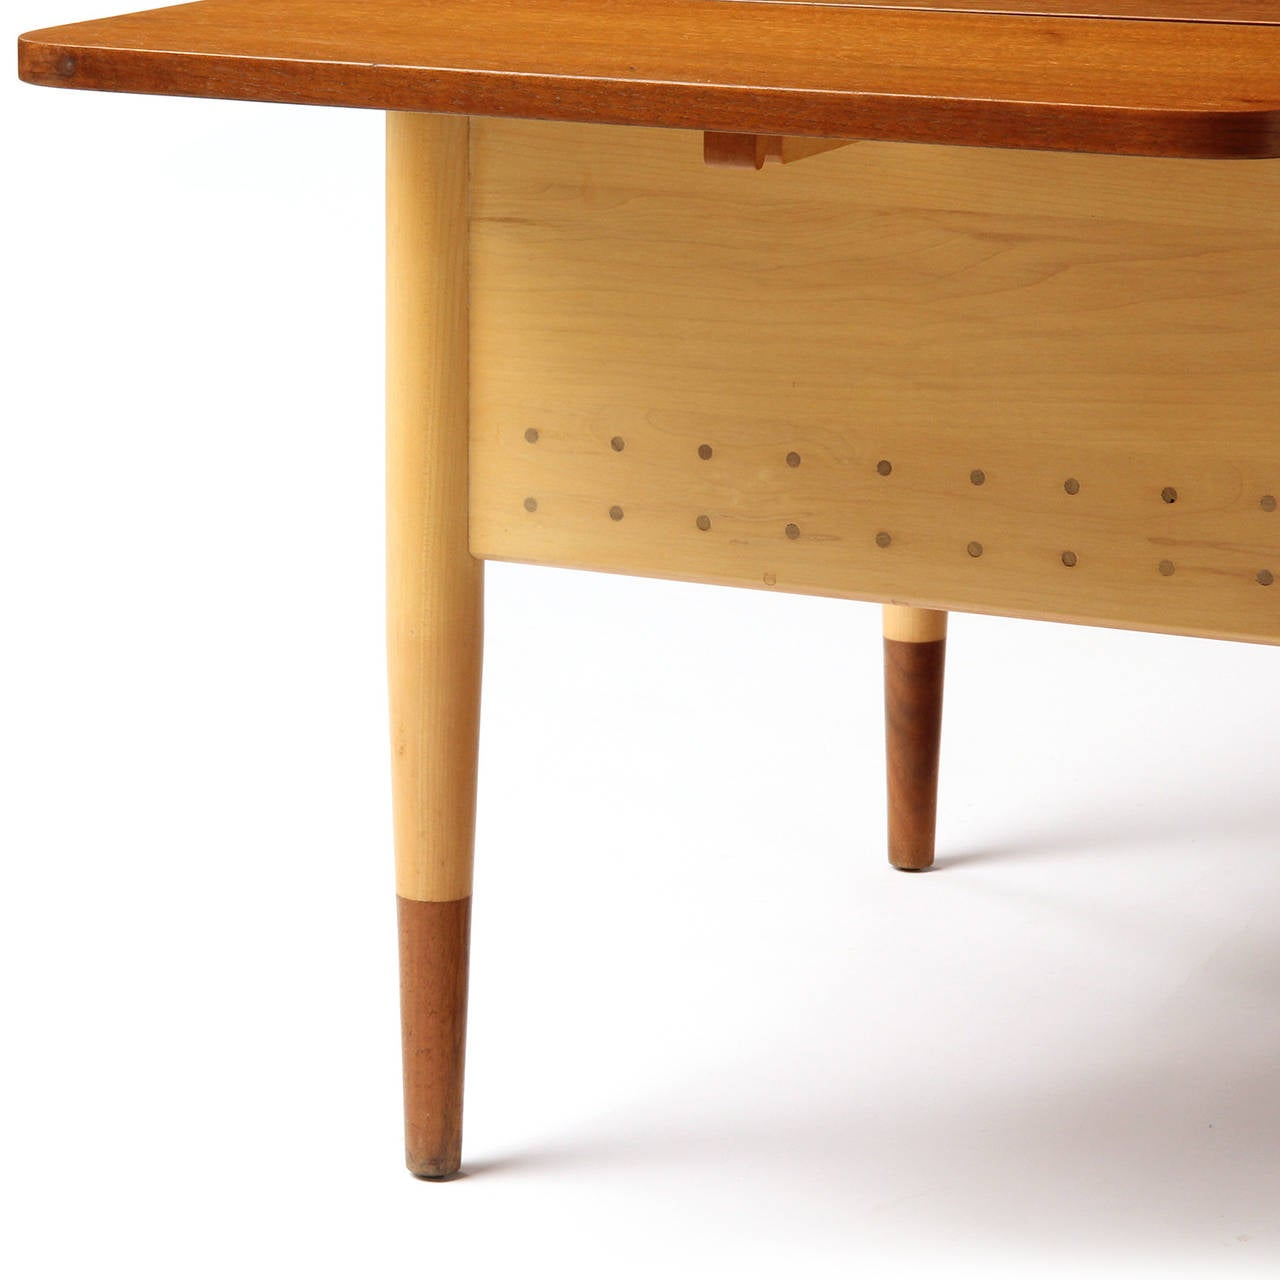 Low Tables For Sale Drop Leaf Low Table By Finn Juhl For Sale At 1stdibs